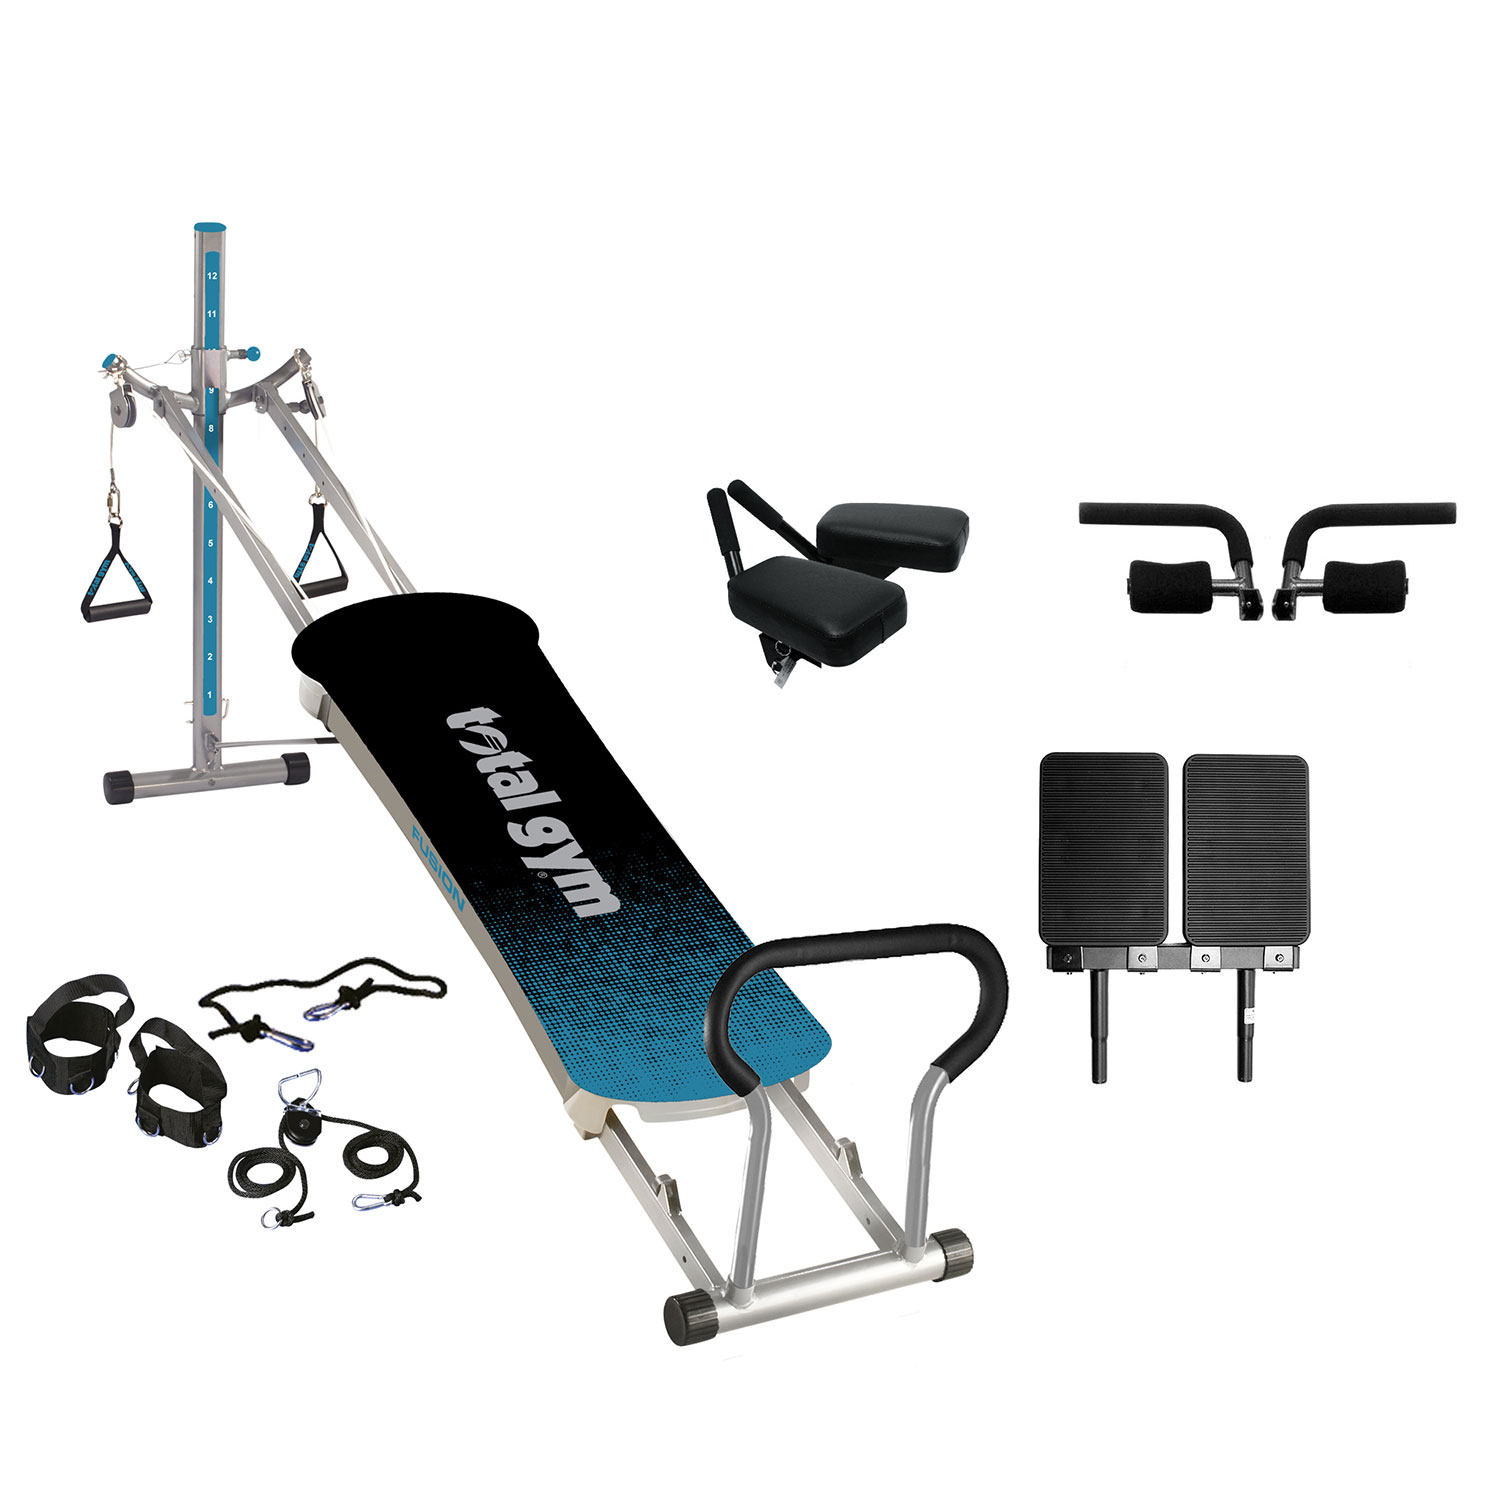 Total Gym Fitness Fusion Full Body Workout Home Exercise Machine Teal